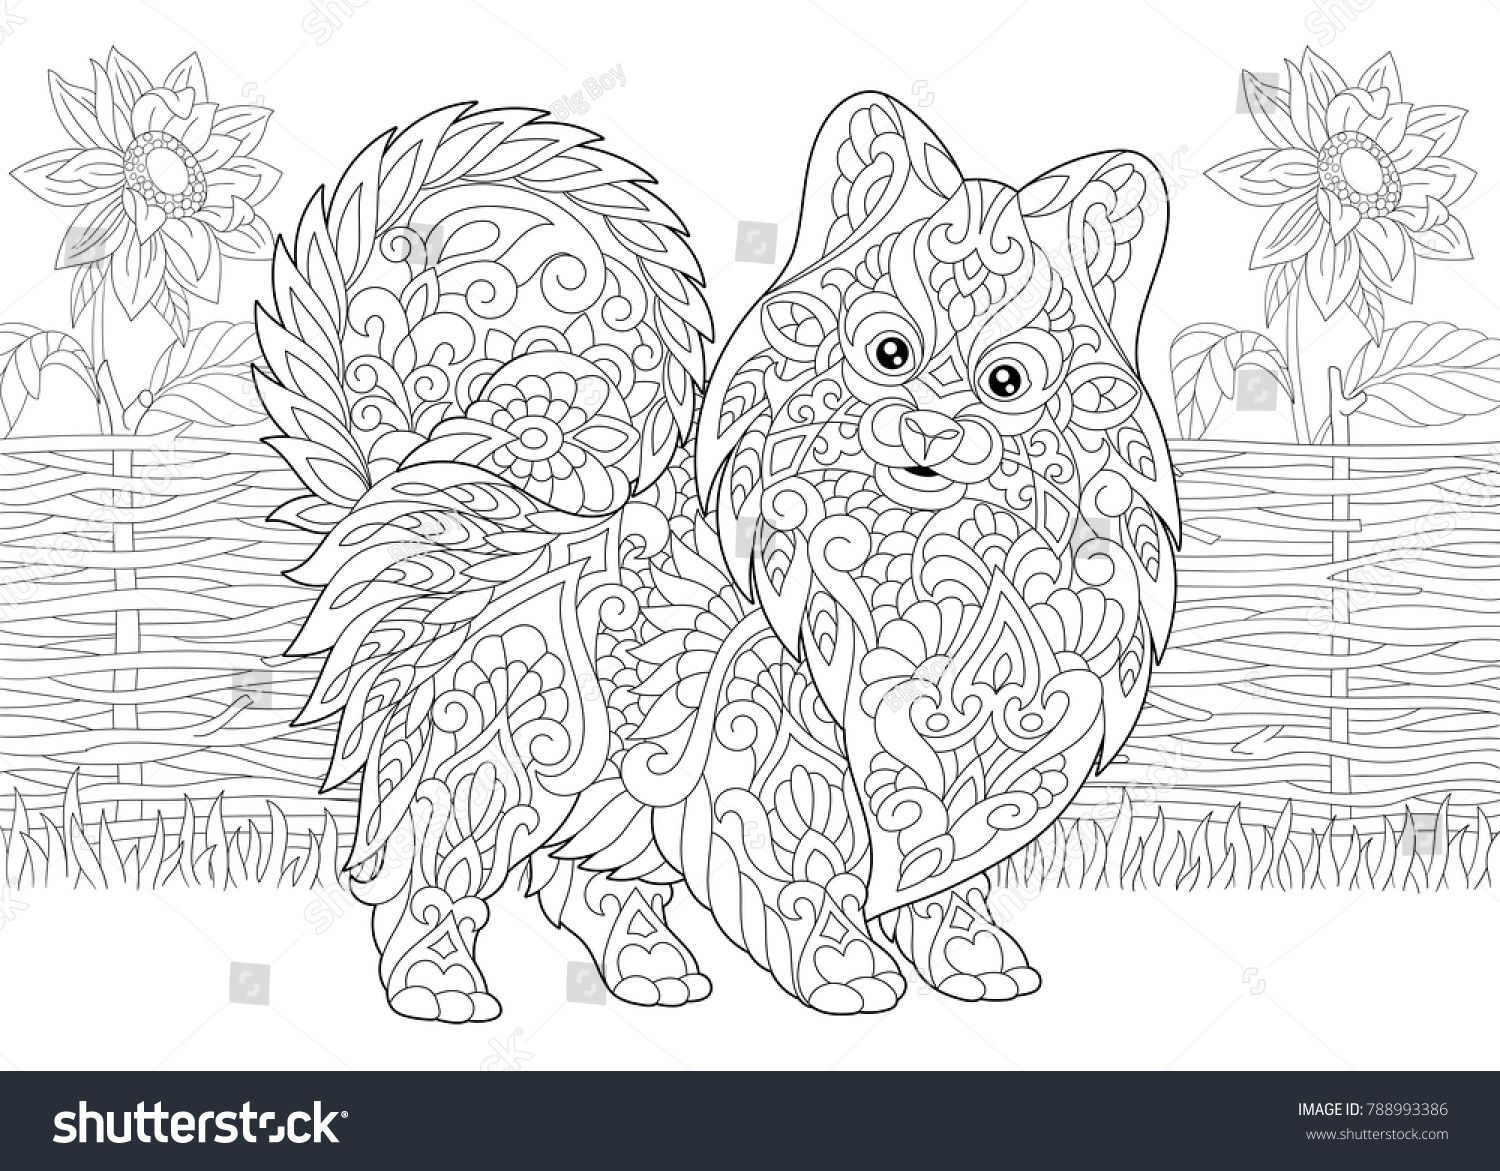 Coloring Page. Adult Coloring Book. Pomeranian spitz, dog symbol of ...